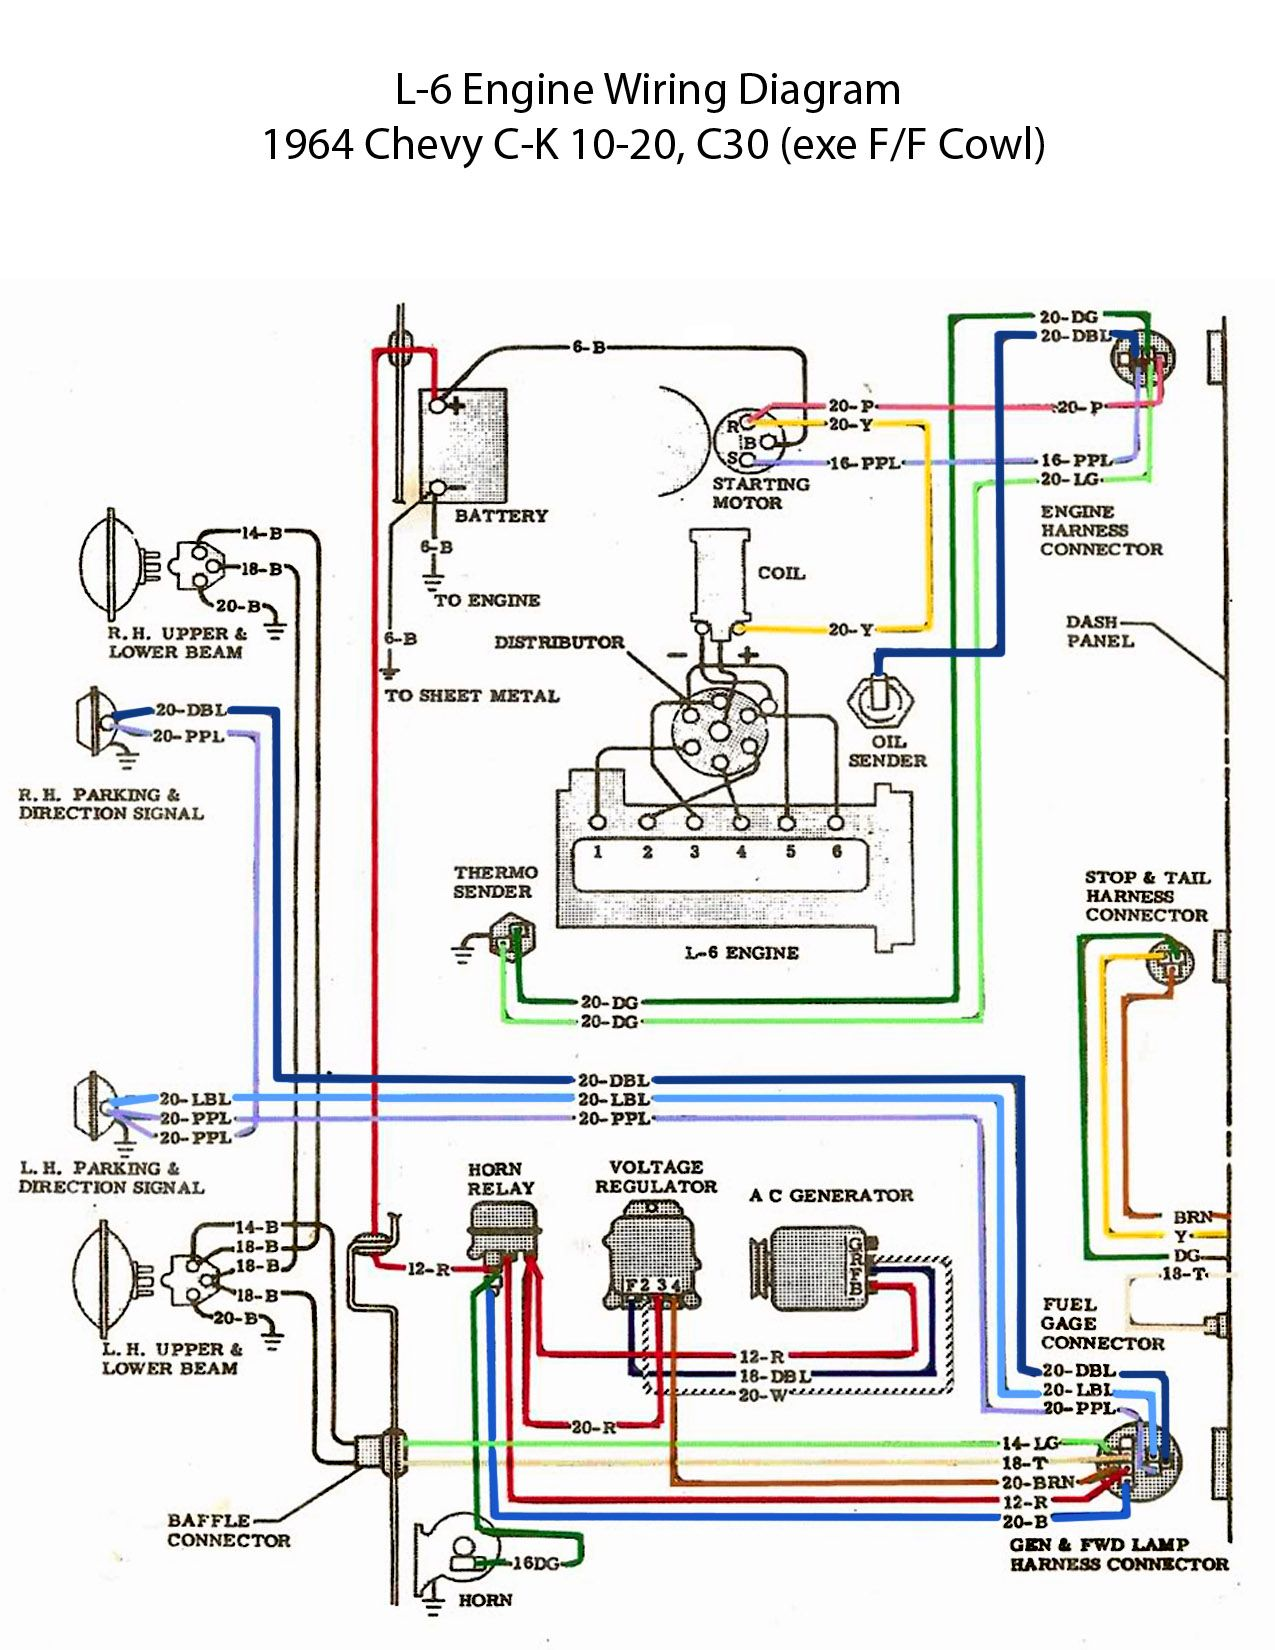 lance camper wiring diagram 6 way plug data wiring diagram blog lance camper wiring diagram 6 way plug electronicswiring diagram 7 wire plug wiring diagram electric l